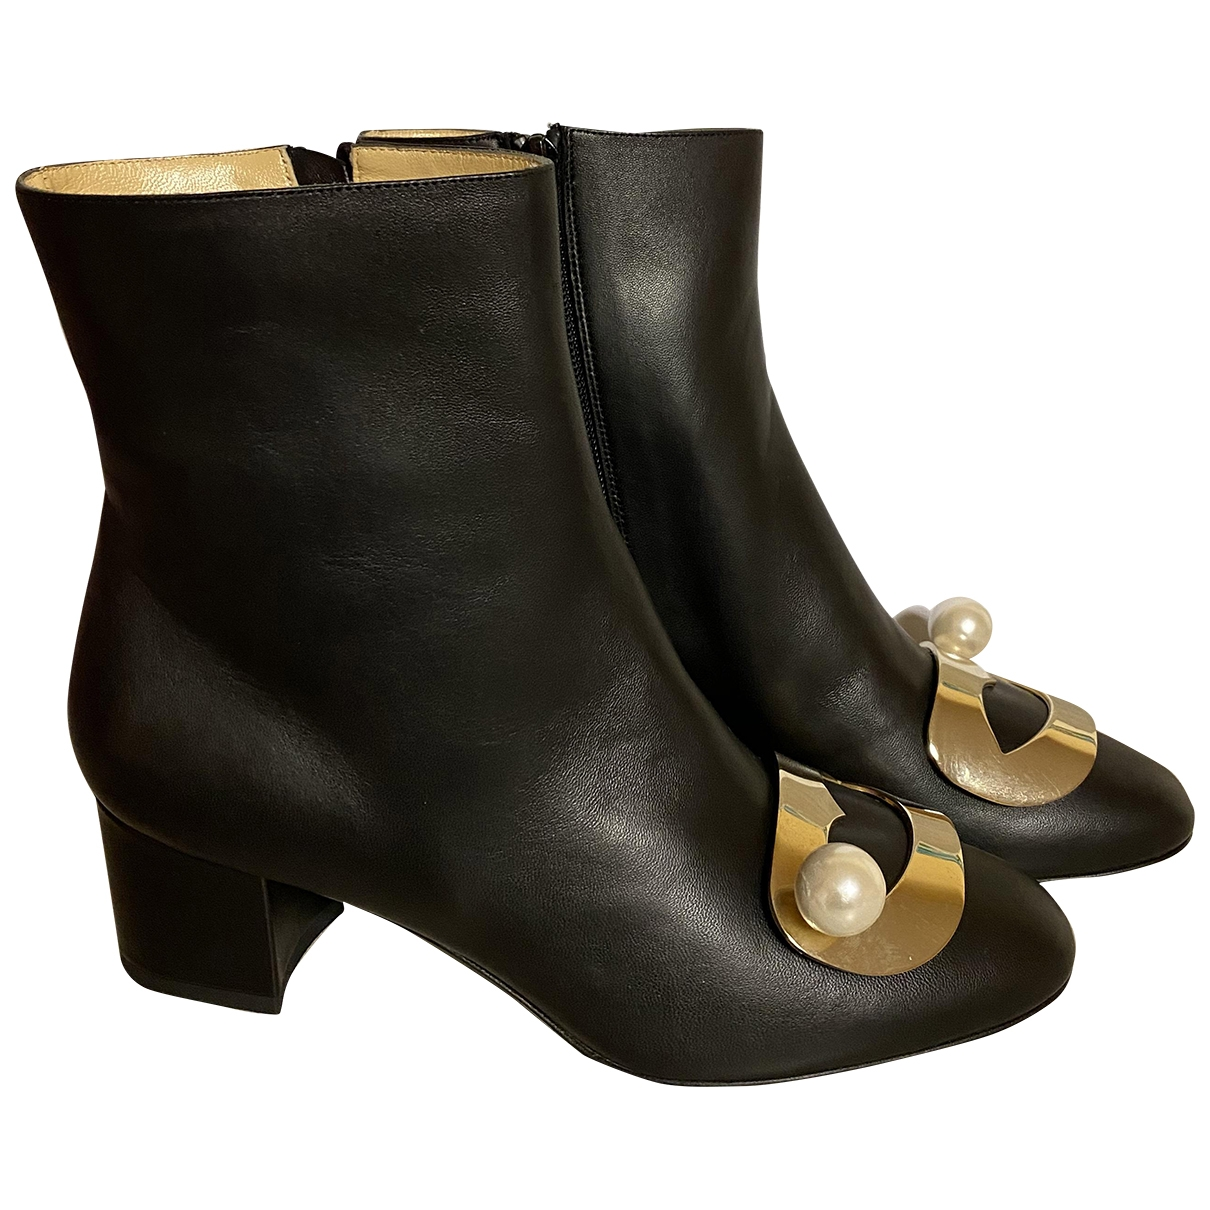 Giannico \N Black Leather Ankle boots for Women 38 EU